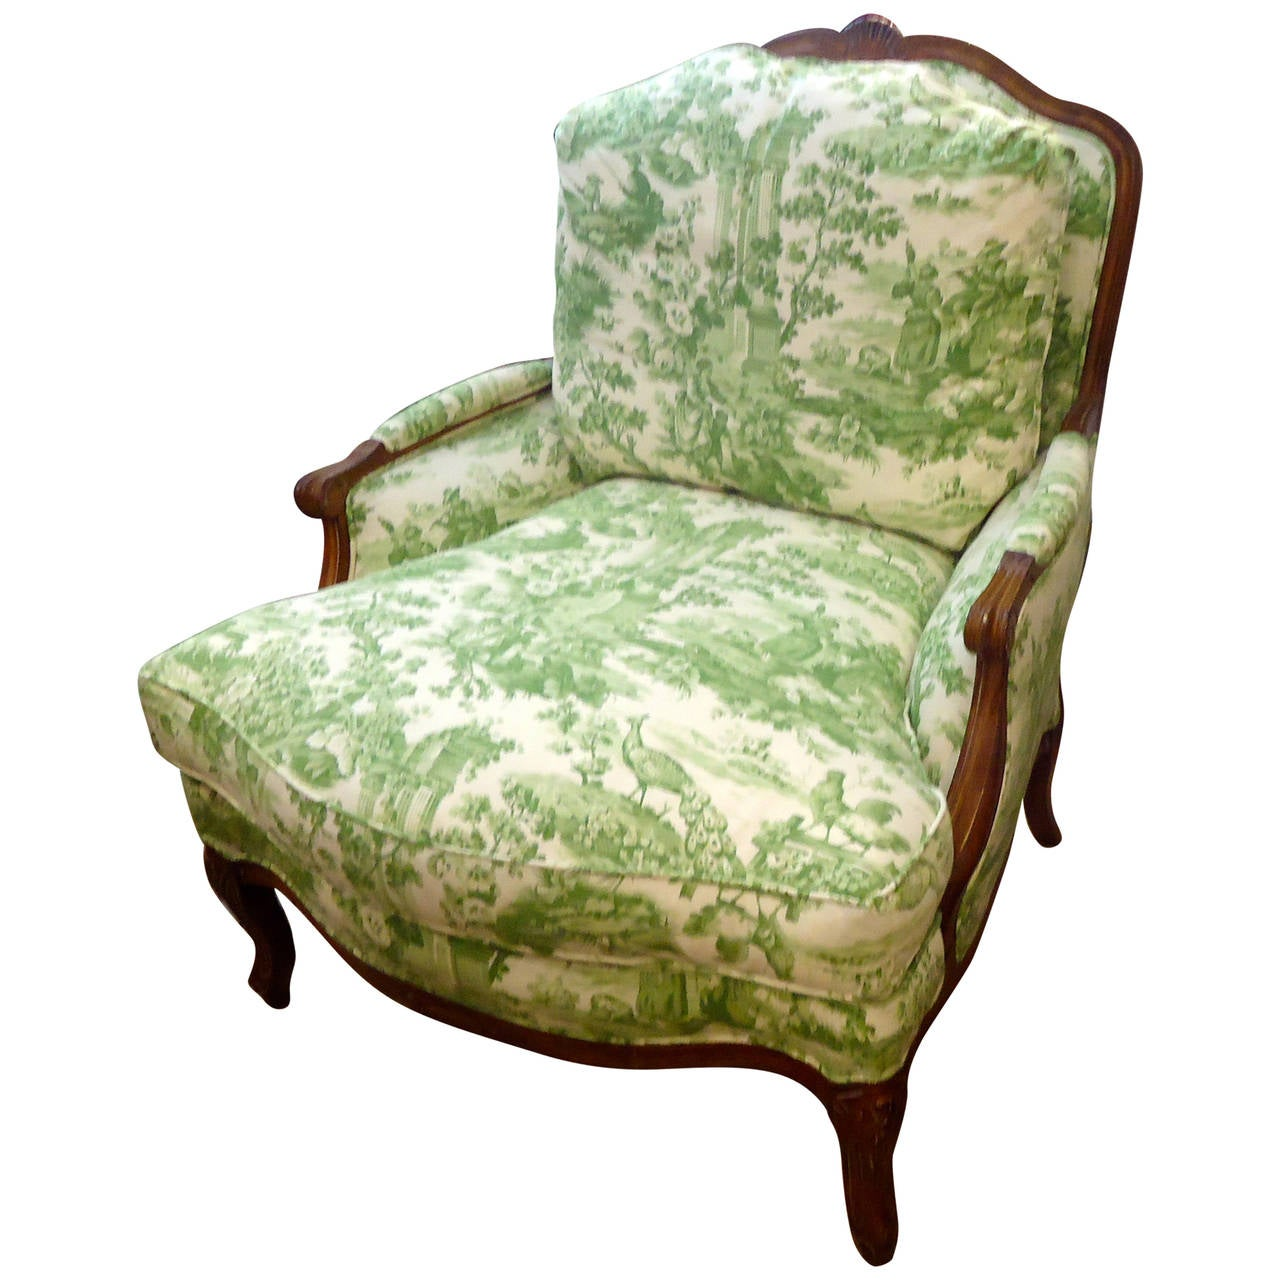 Comfiest Chair Large Comfy French Bergere Lounge Chair Upholstered In